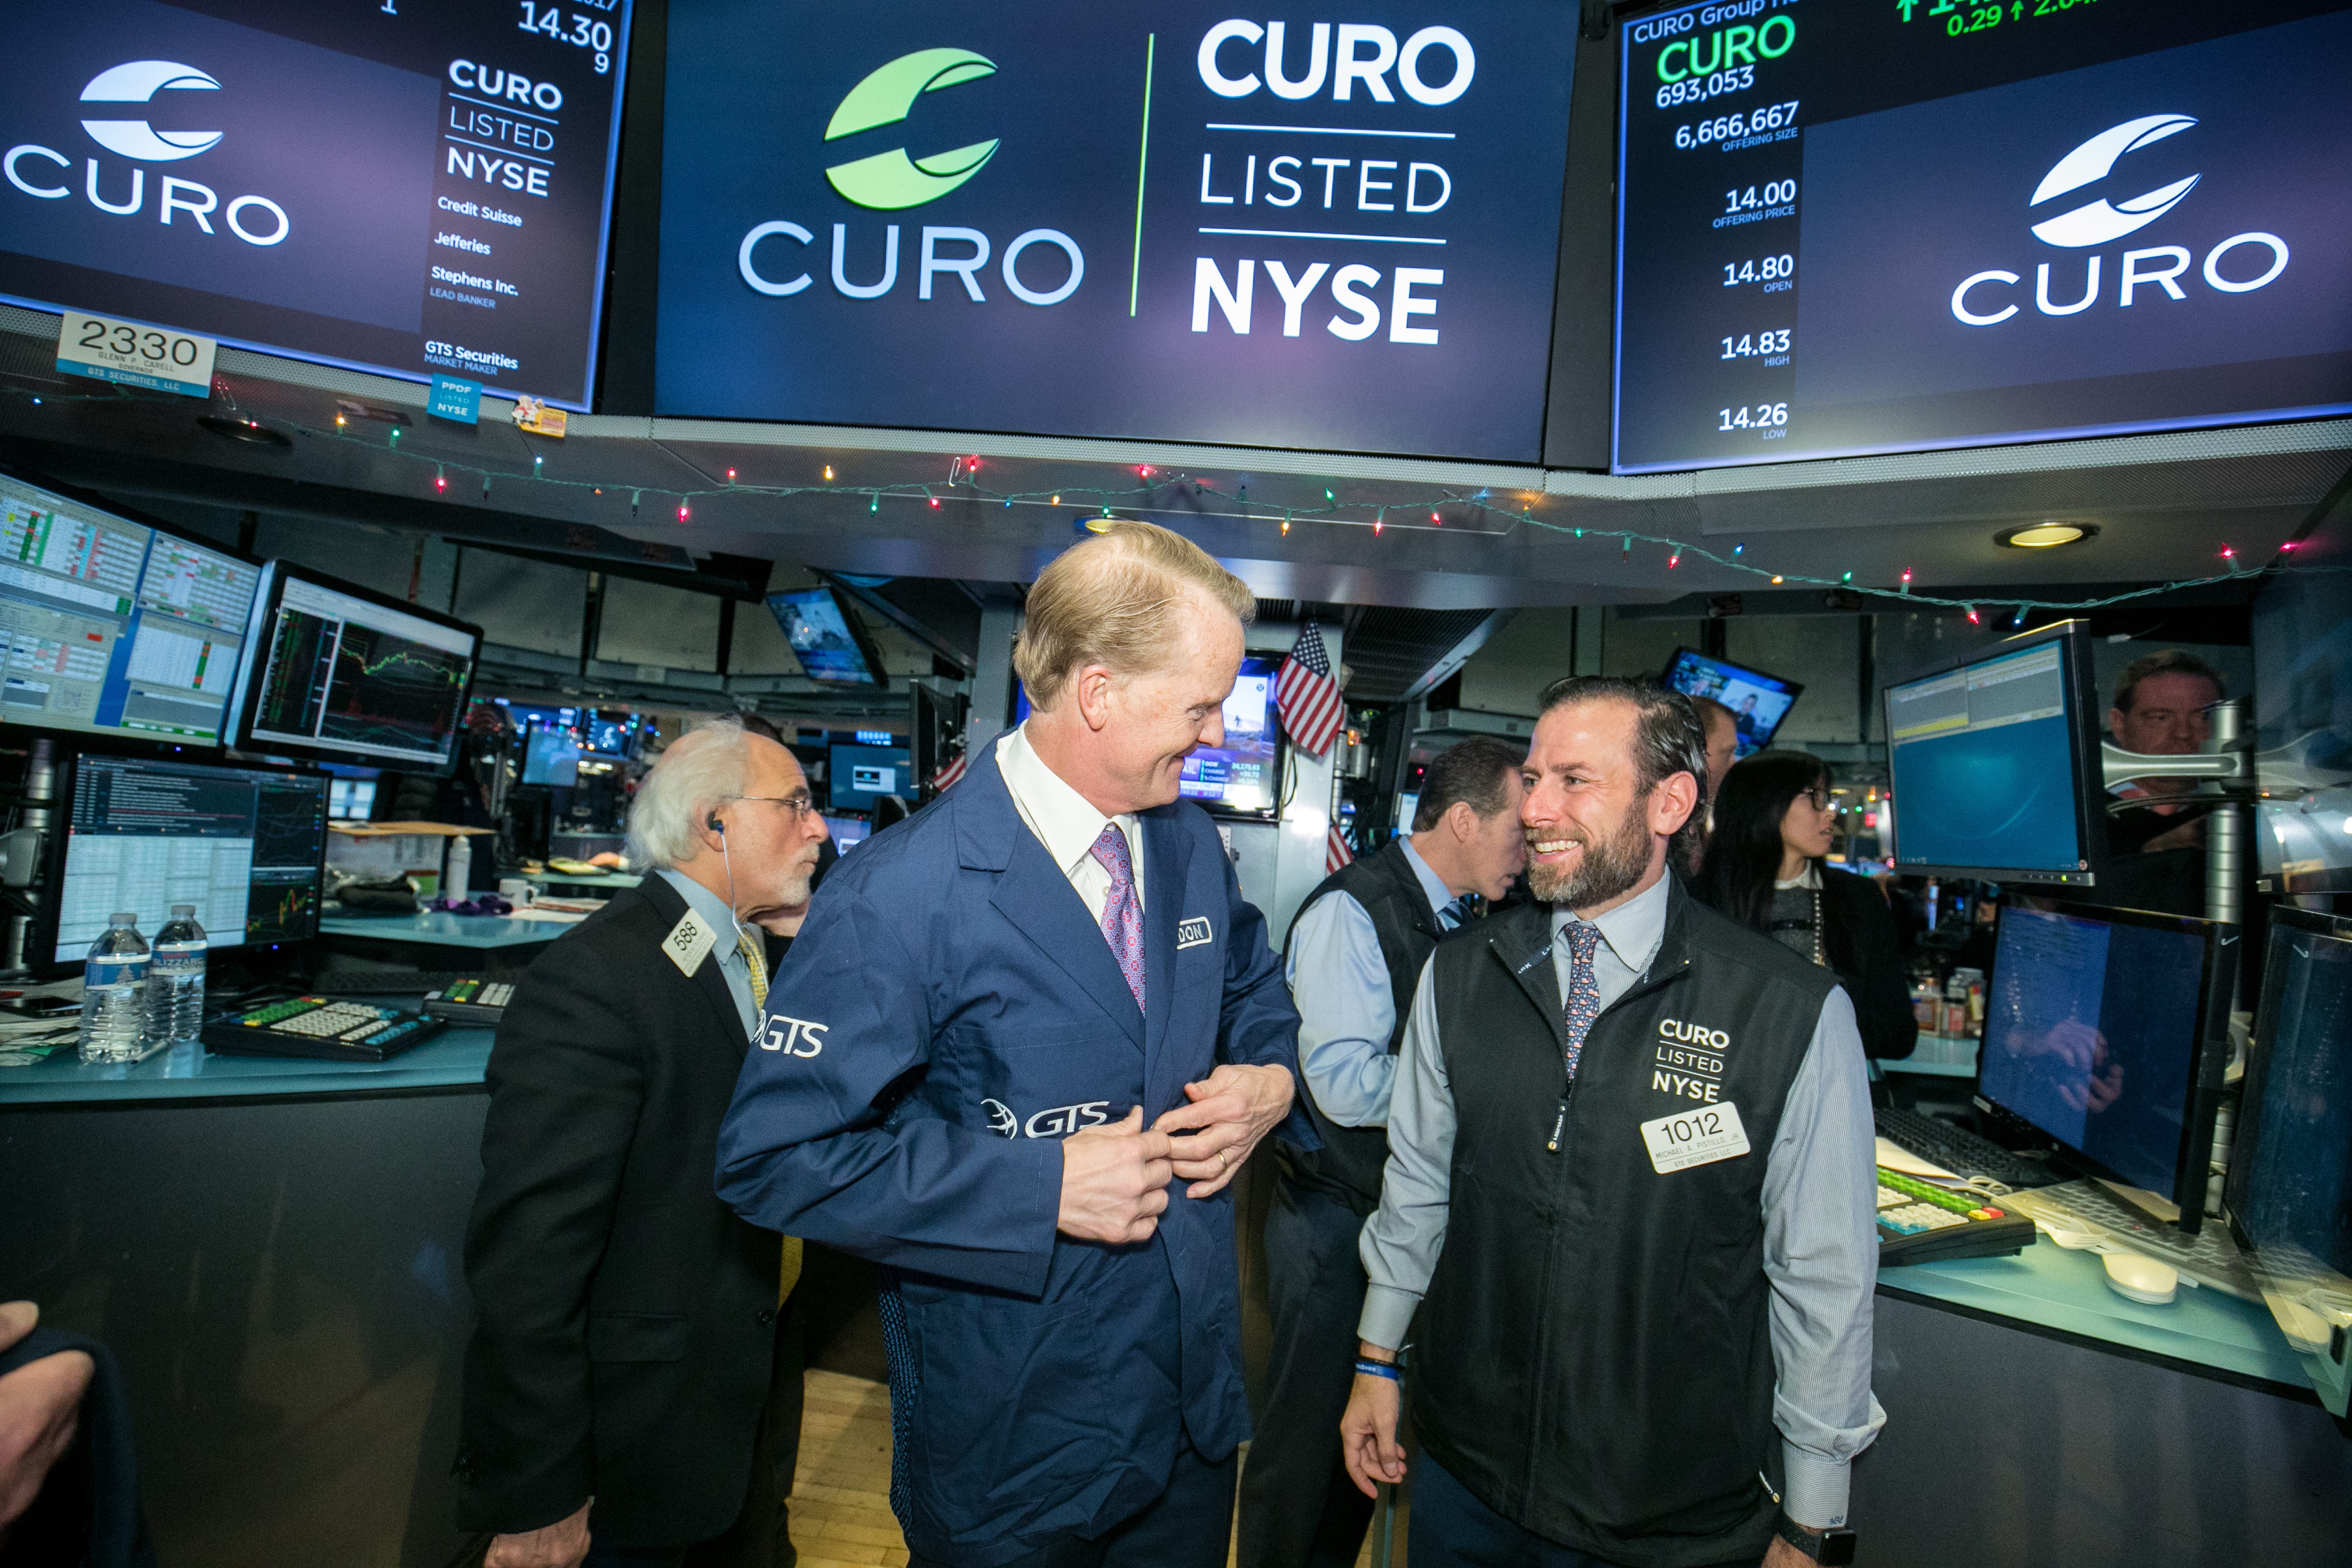 CURO Announces Participation in the Credit Suisse Financial Services Forum on Wednesday February 14th